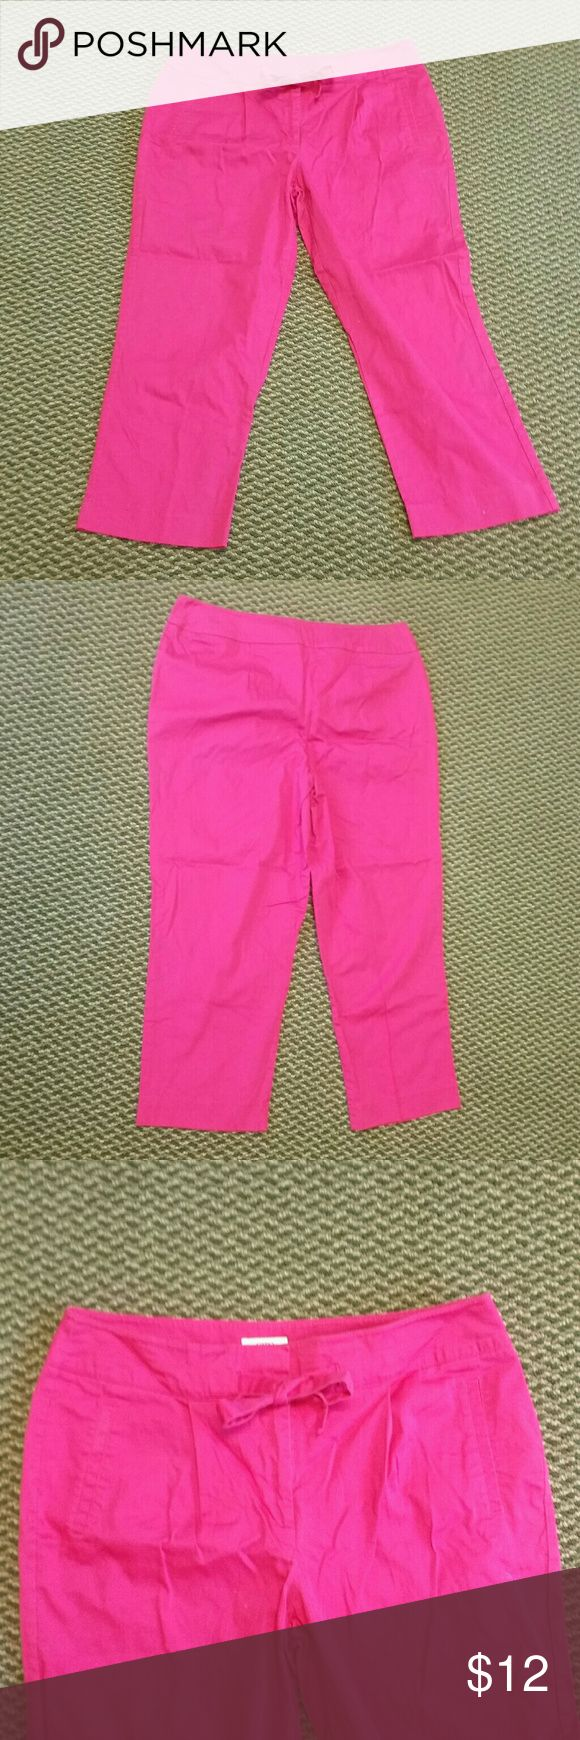 """Cato Pink Capri Pants Tie Bow Pockets Cotton Blend Cato Pink Capri Pants  With a Tie /Bow at waist 2 Pockets  Cotton Blend 97% Cotton 3% Spandex Slight Stretch Machine Washable  Measures approximately 36"""" at waist and 35"""" in length  2 hook and loop closures with 1 button and a zipper In pants box #1 Cato Pants Capris"""